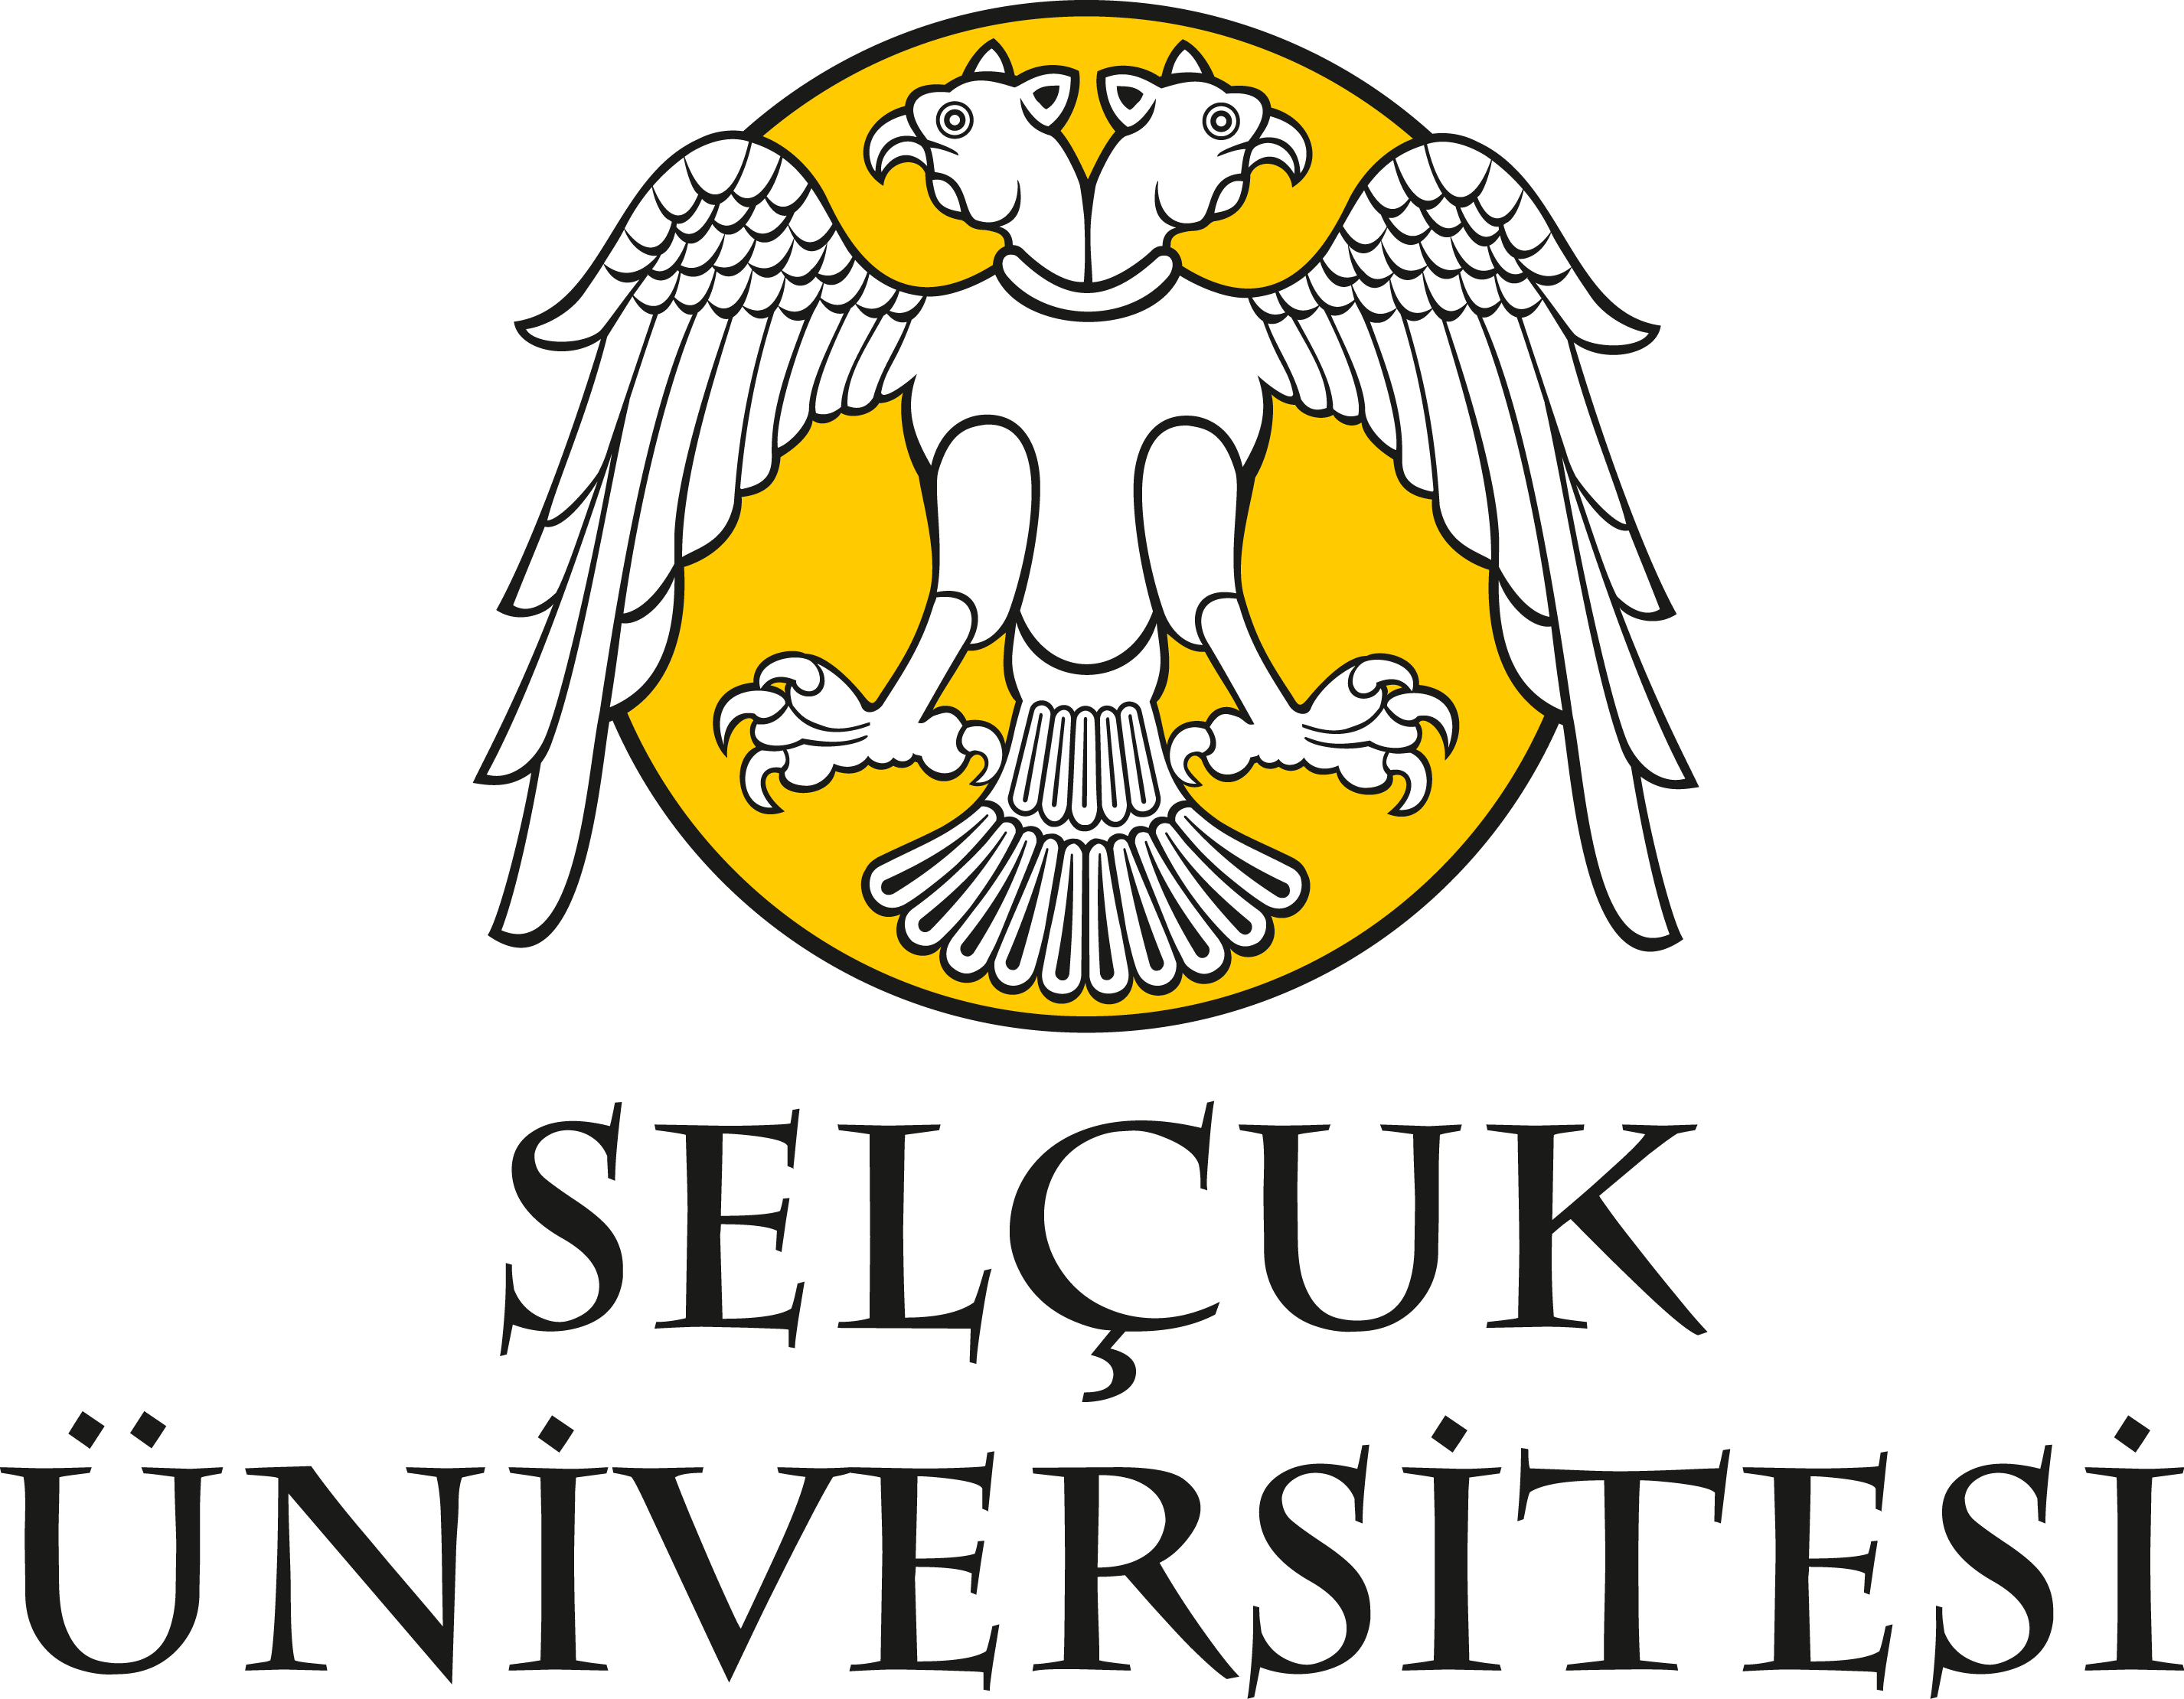 selcuk universitesi logo